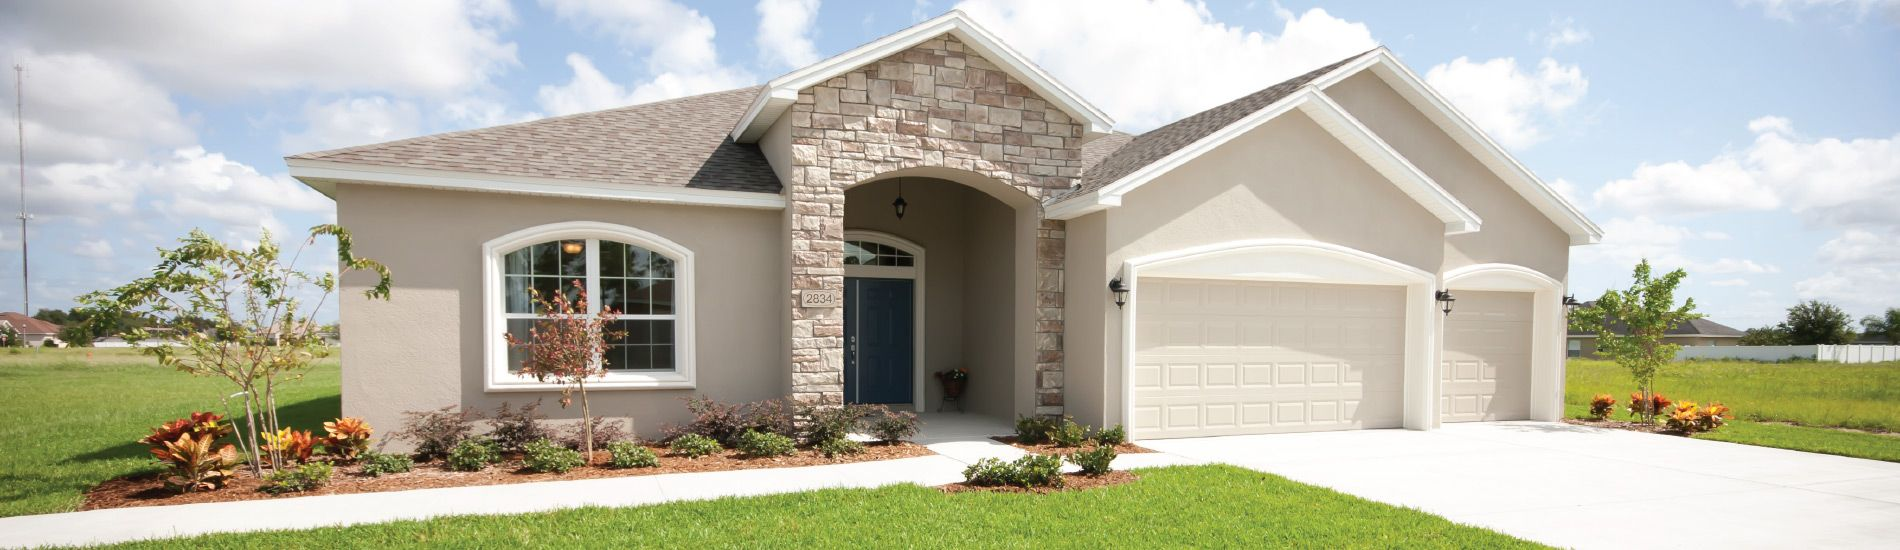 Taexx Built in Pest Control for Florida New Homes Highland Homes